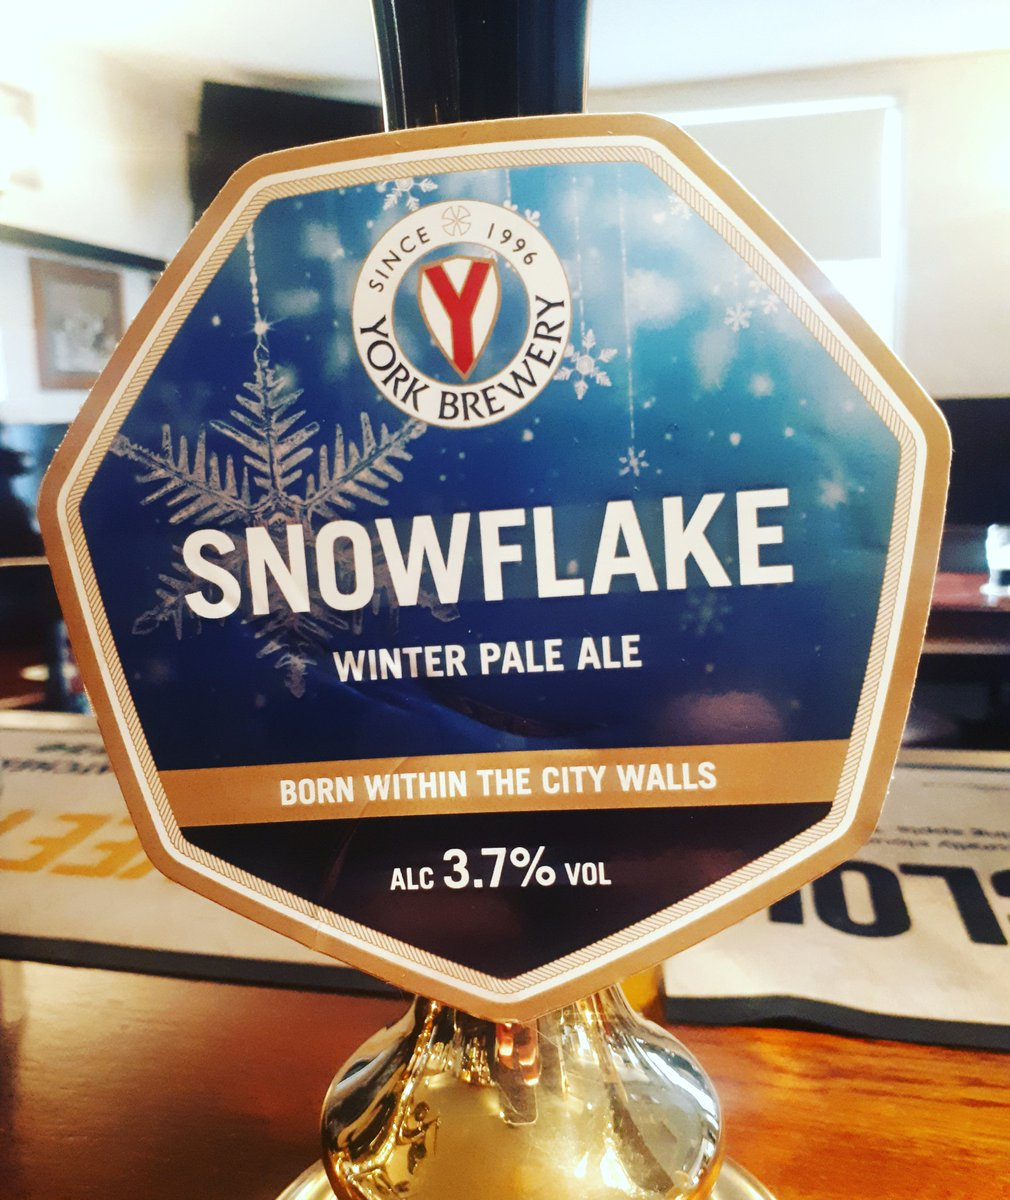 Now serving... 🍻@YorkBrewery #everydayisabeerfestival #beer #nowserving #onthebar #local #localale #localbrew #winterale